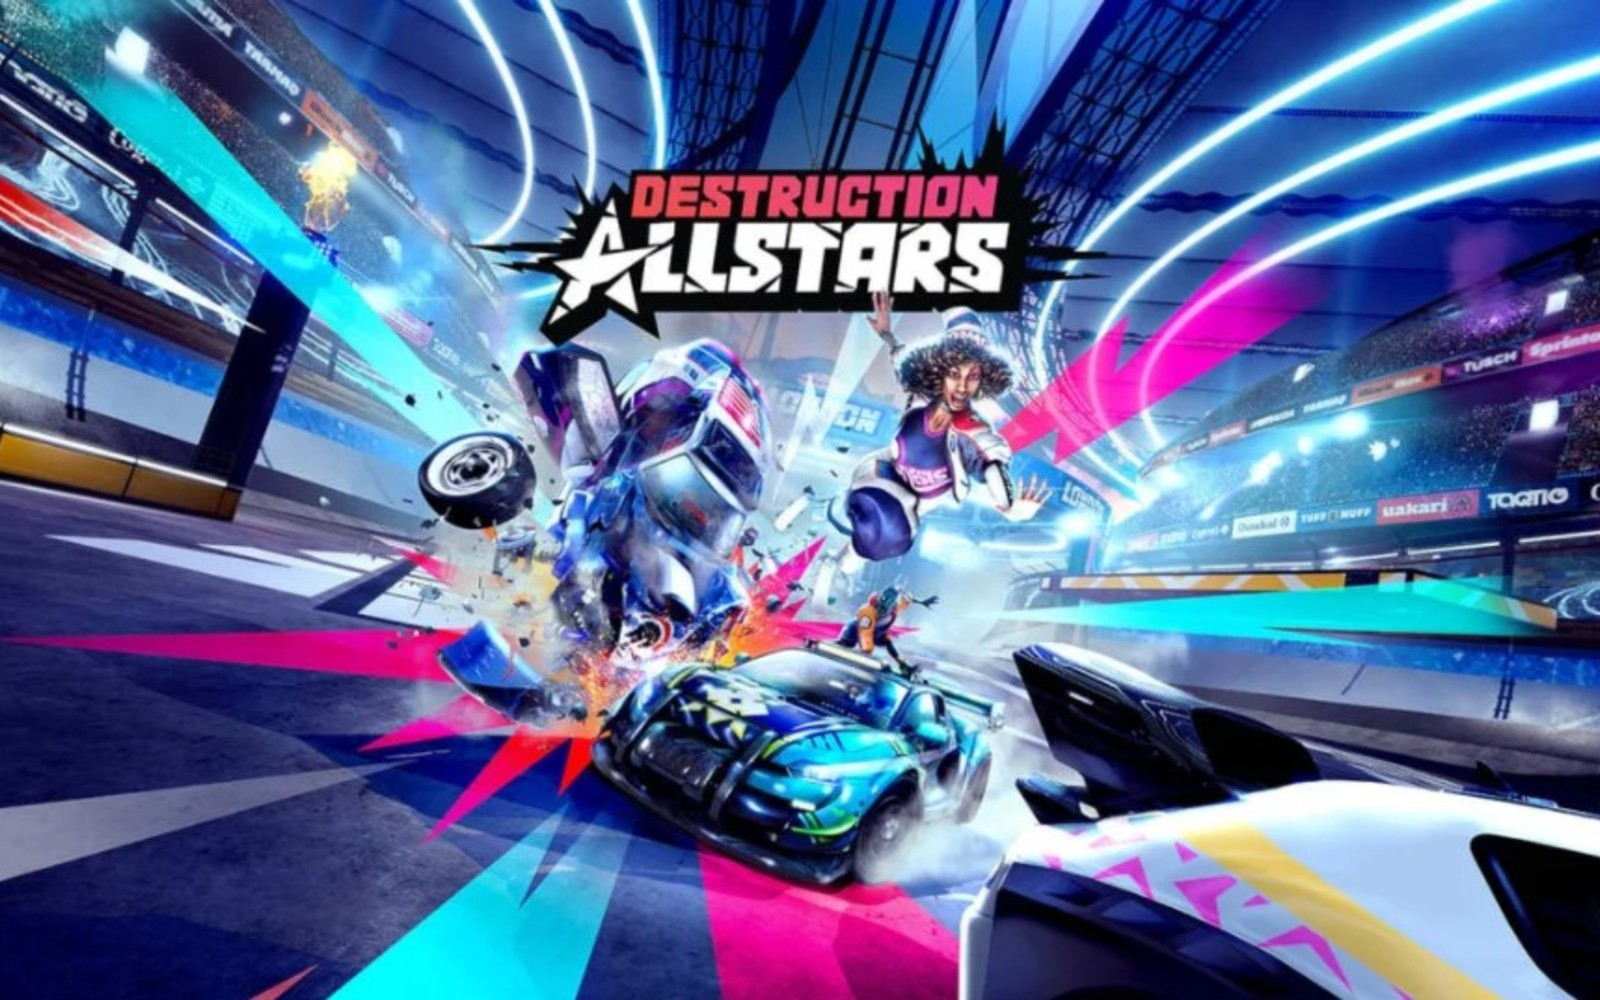 PS5 launch title 'Destruction AllStars' postponed to February – Yahoo Finance Australia